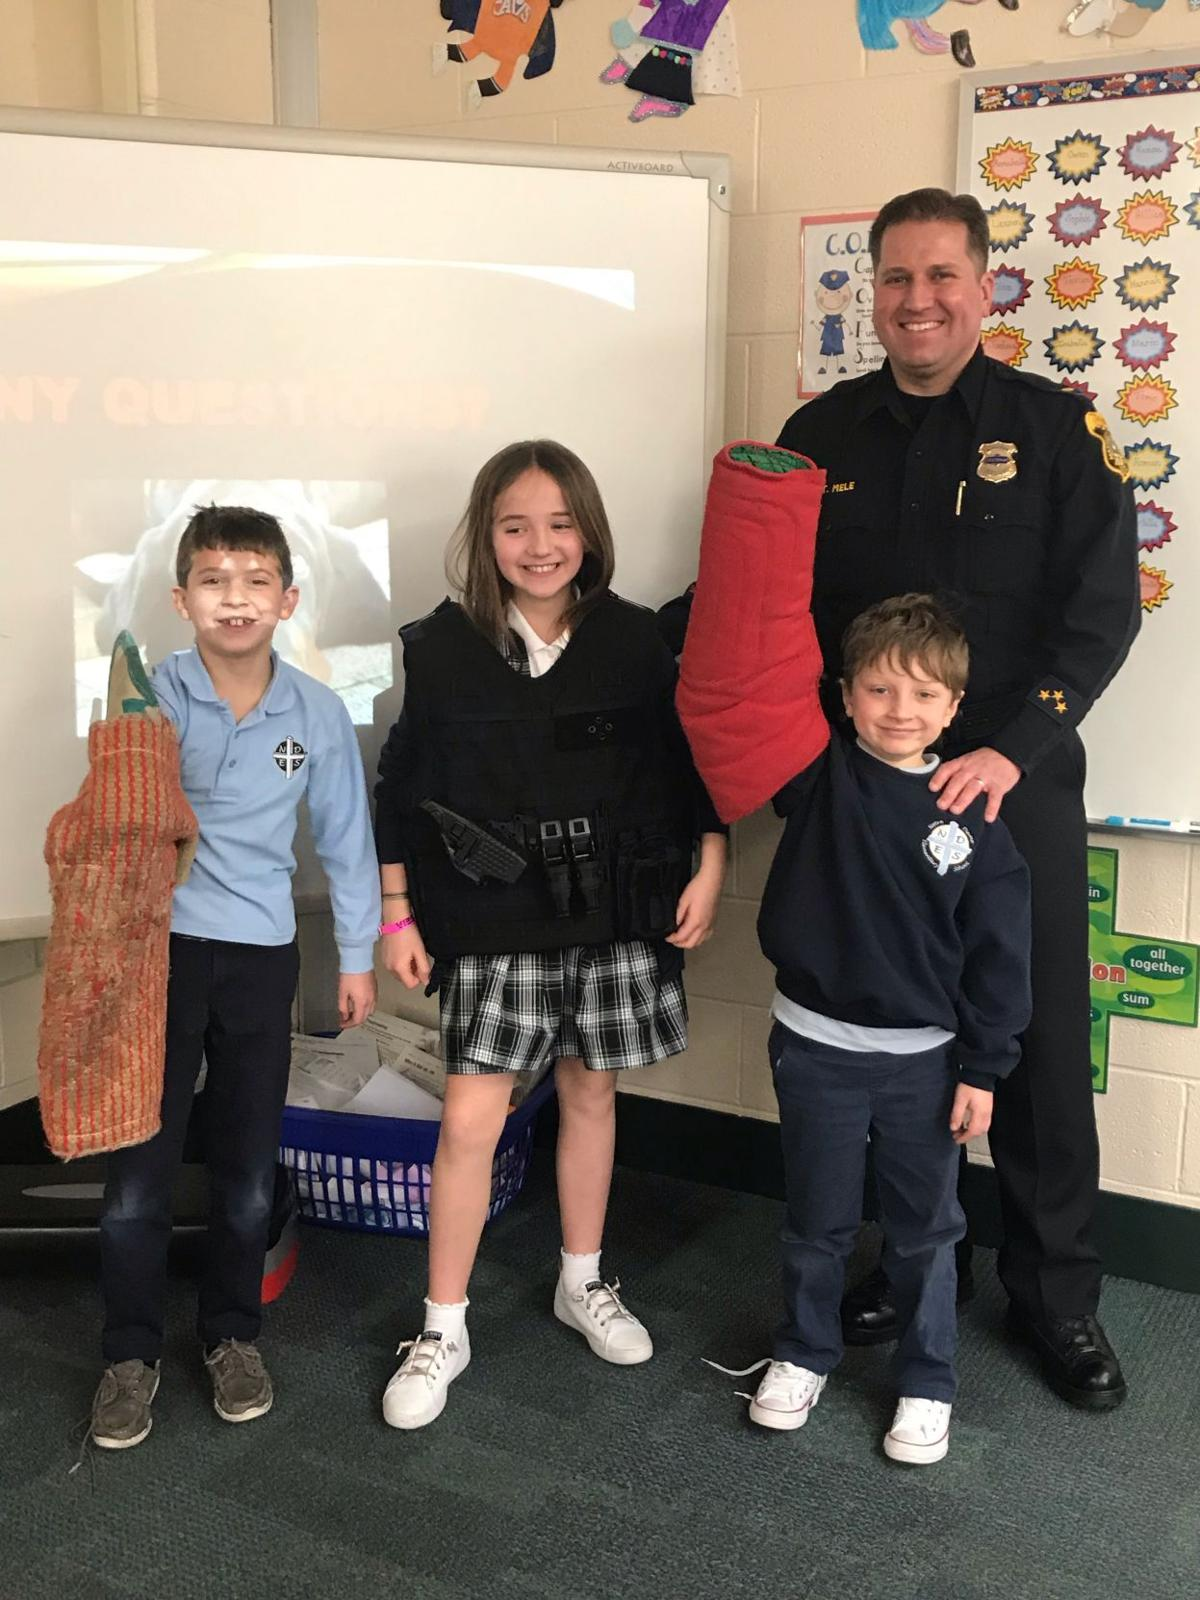 Third-graders learn about K-9 handling